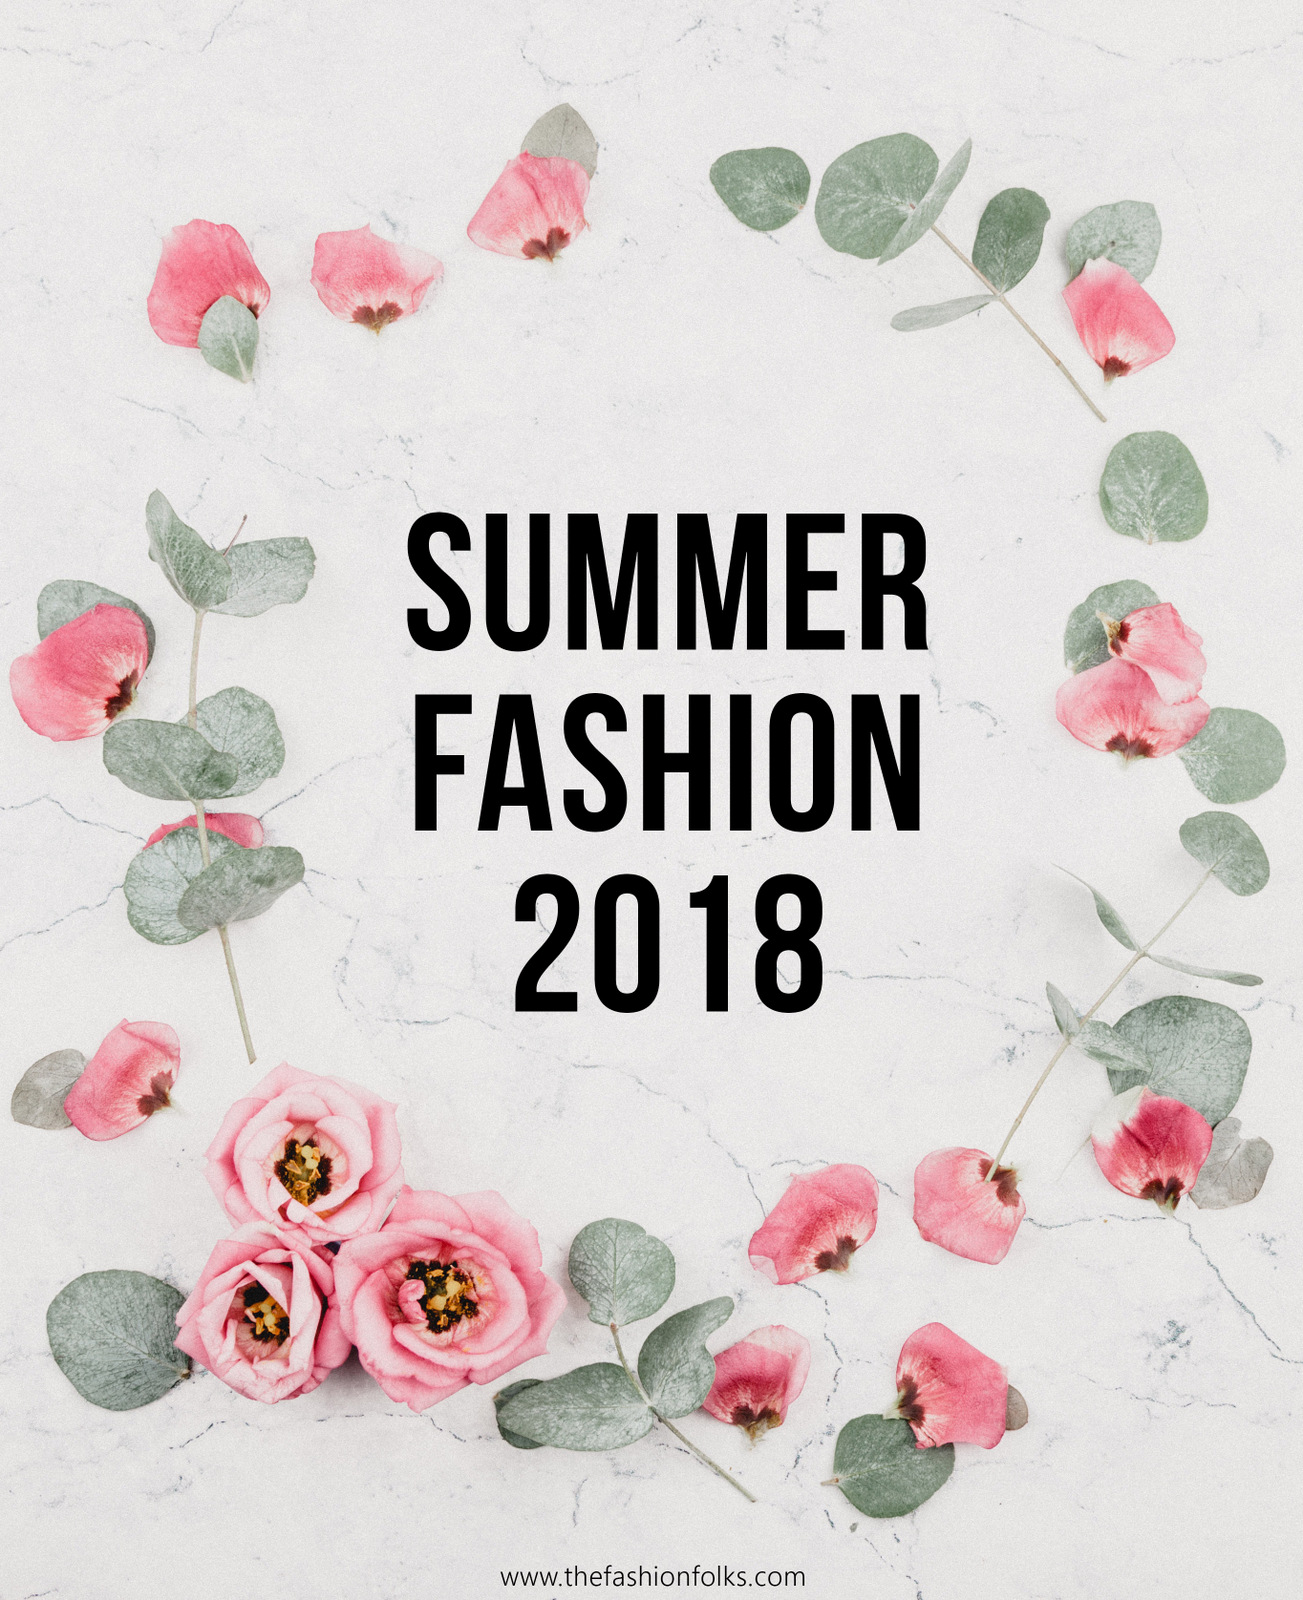 Summer Fashion 2018